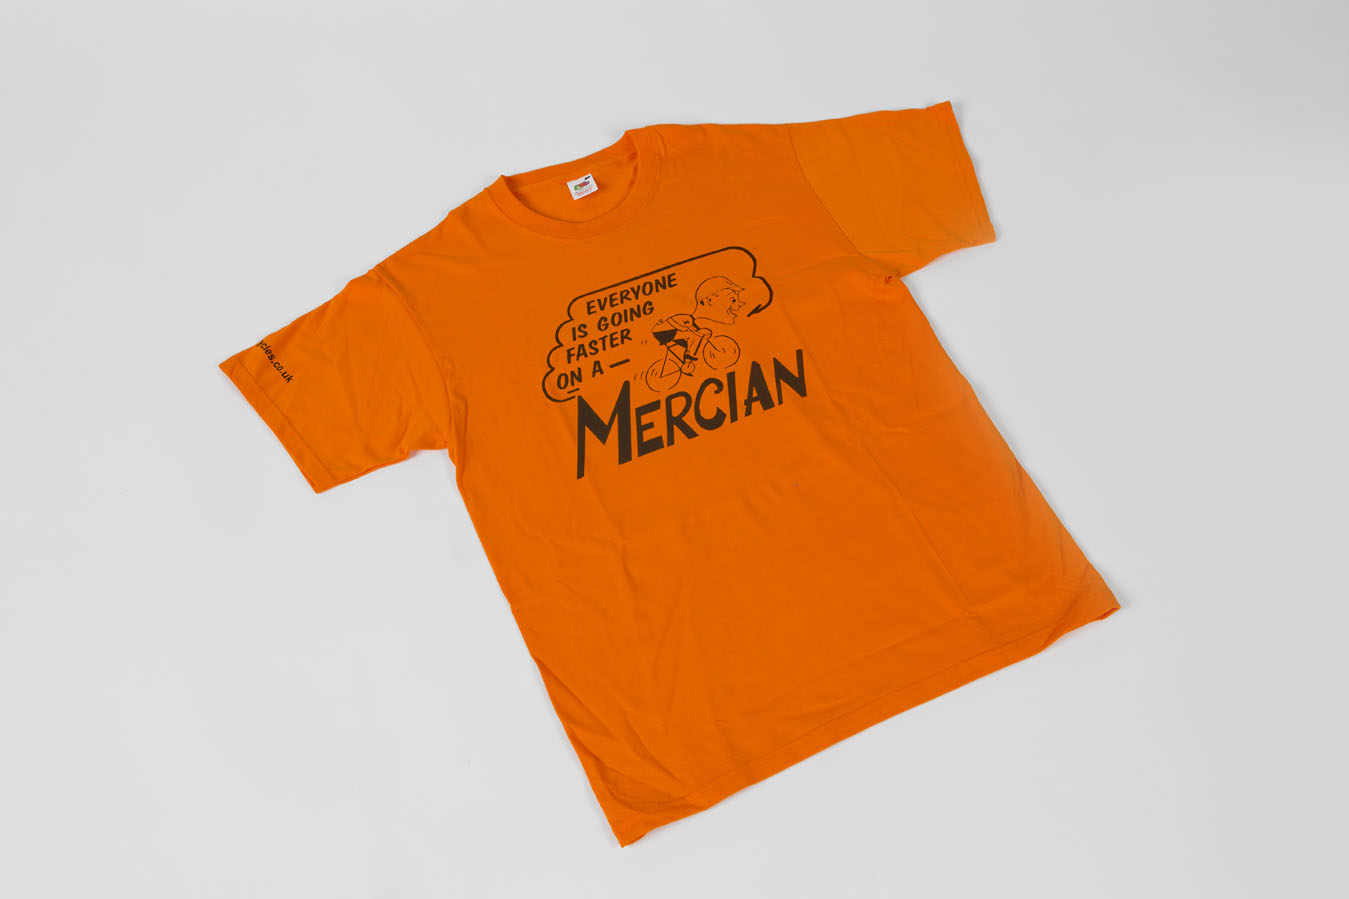 Mercian Screen Printed T-shirt